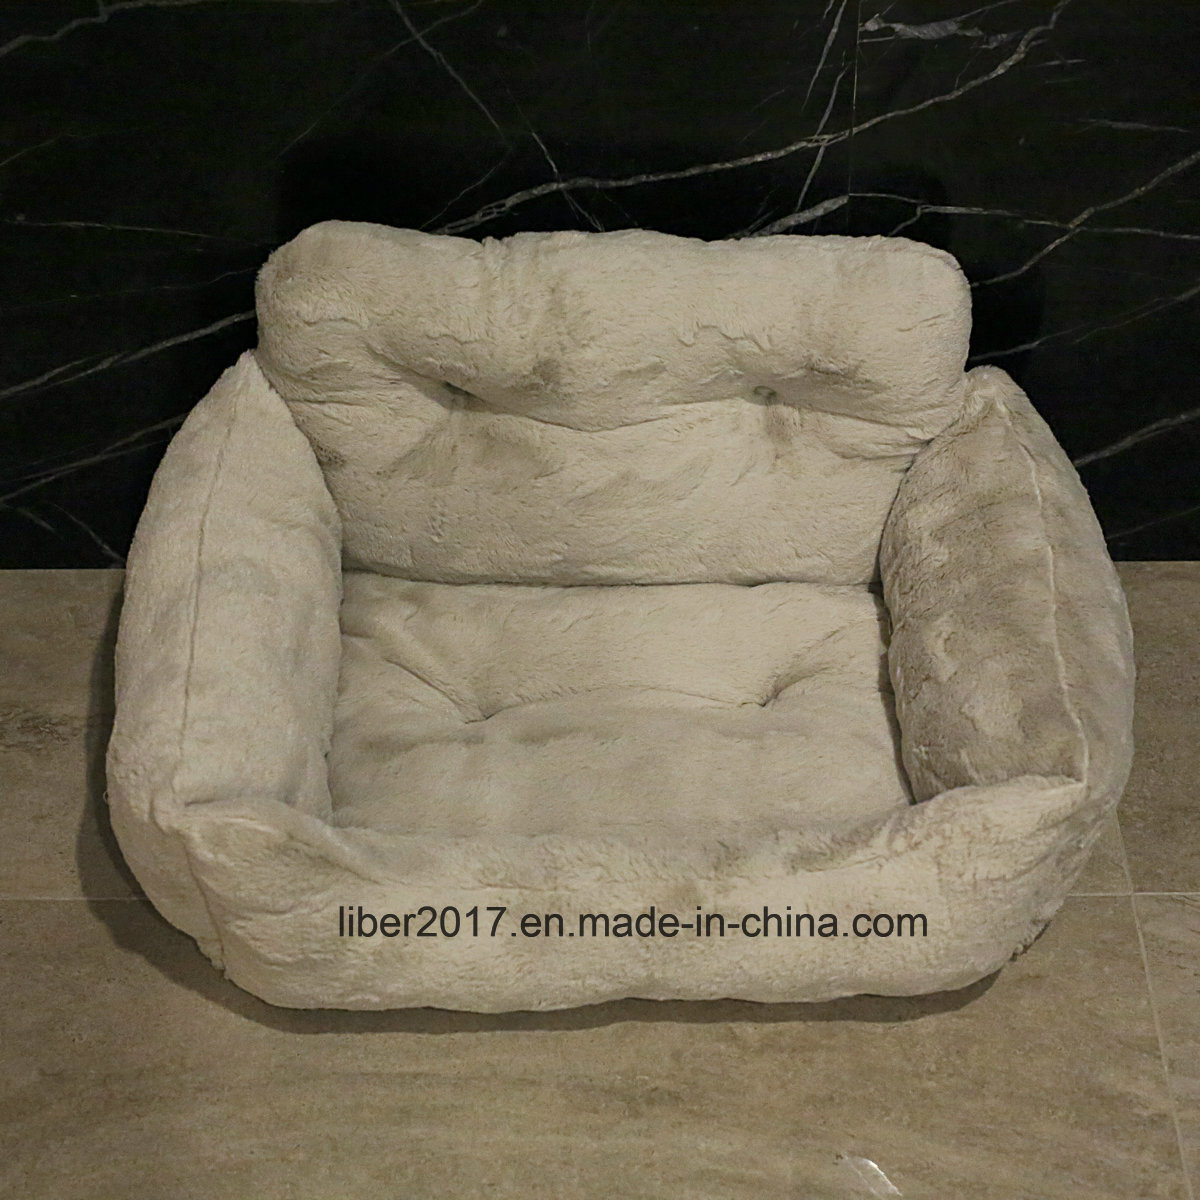 Remarkable Hot Item Pet Products Dog Sofa Beds Luxury Dog Bed Large Dogs Beds House Evergreenethics Interior Chair Design Evergreenethicsorg